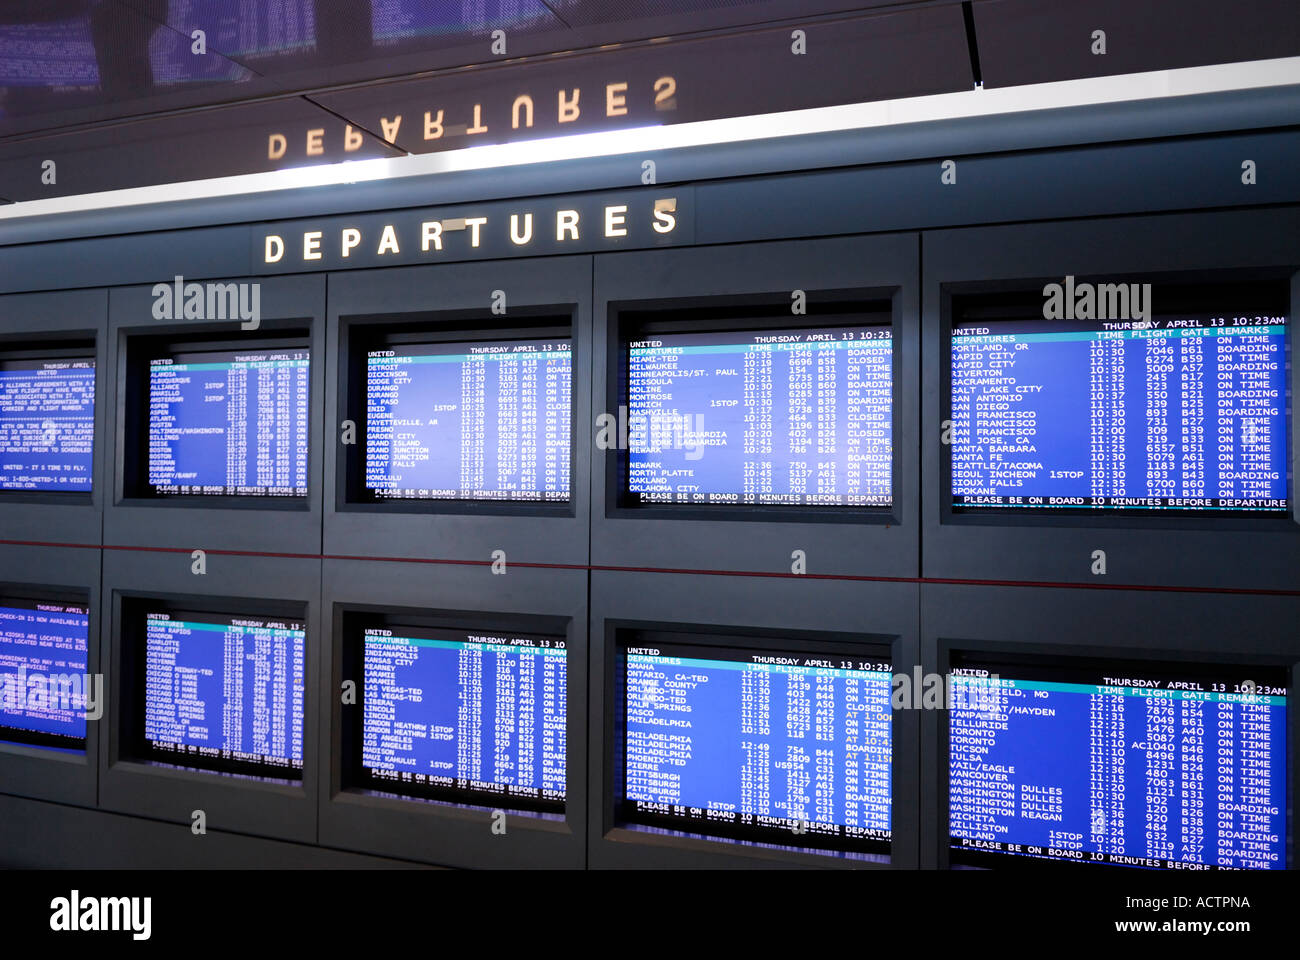 Departure flight TV screens at a large international airport - Stock Image